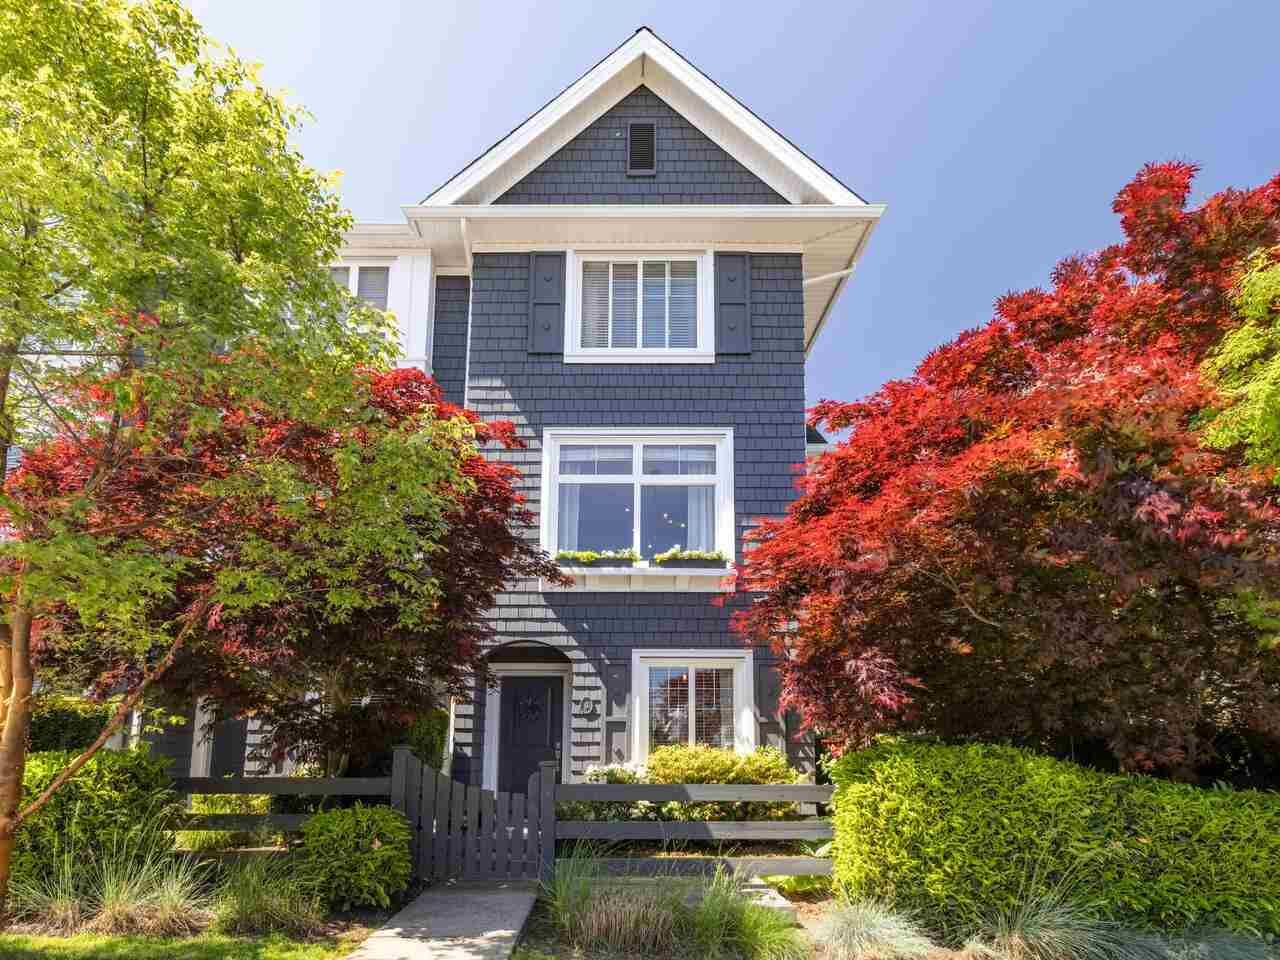 """Main Photo: 5 2487 156 Street in Surrey: King George Corridor Townhouse for sale in """"Sunnyside"""" (South Surrey White Rock)  : MLS®# R2582177"""